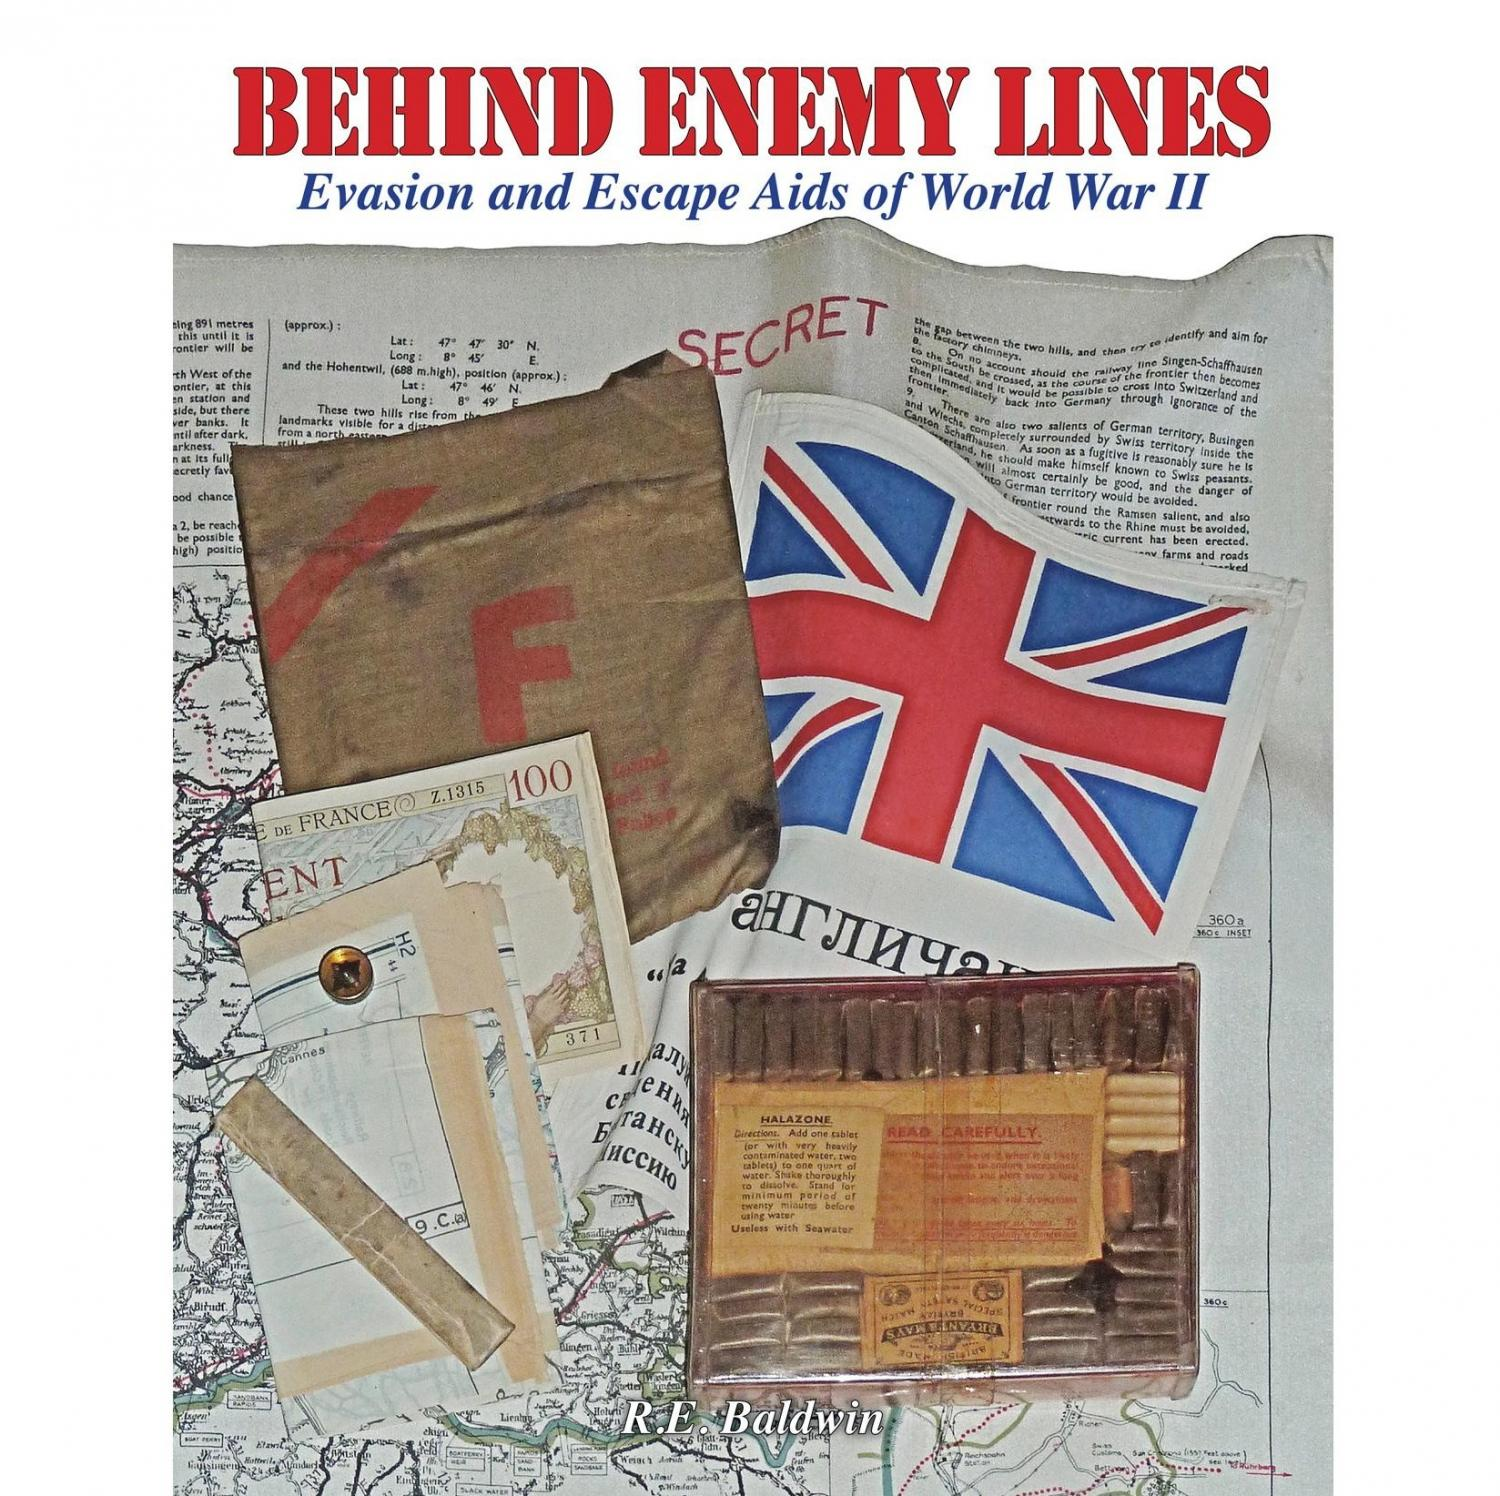 Behind Enemy Lines - Escape/Evasion Aids